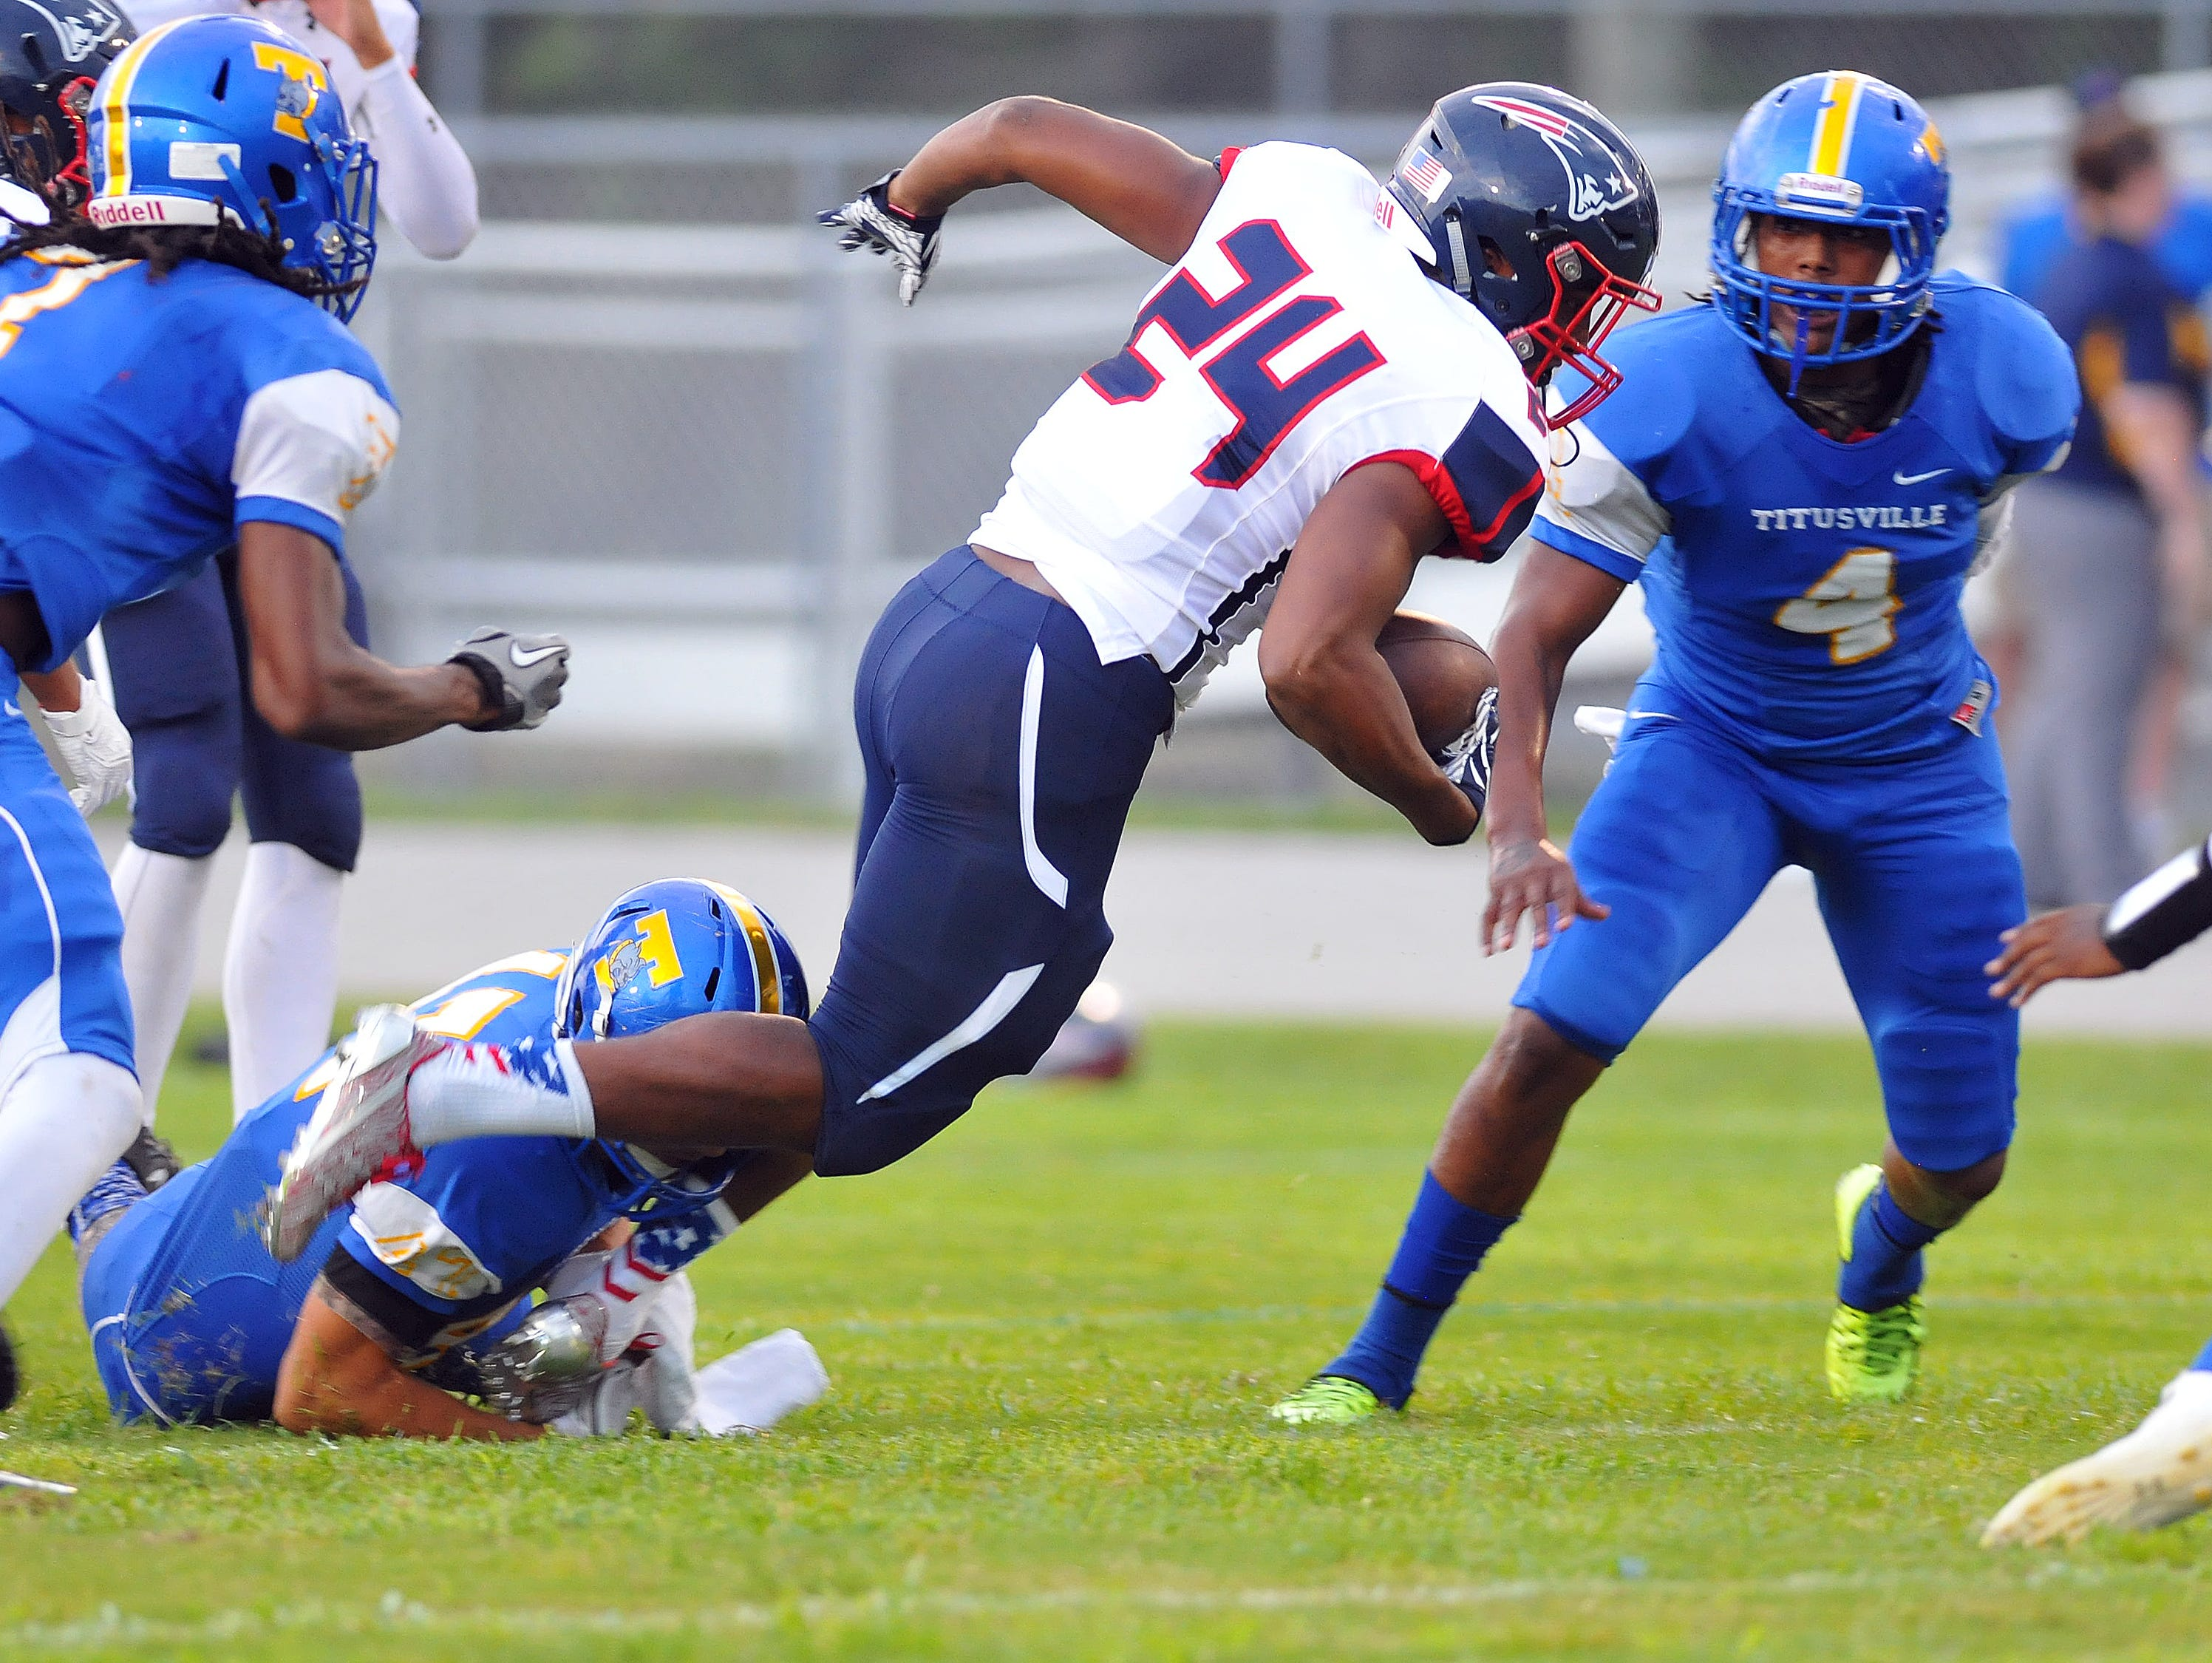 Bobby Bruce (4) closes in on a Lake Brantley ball carrier.